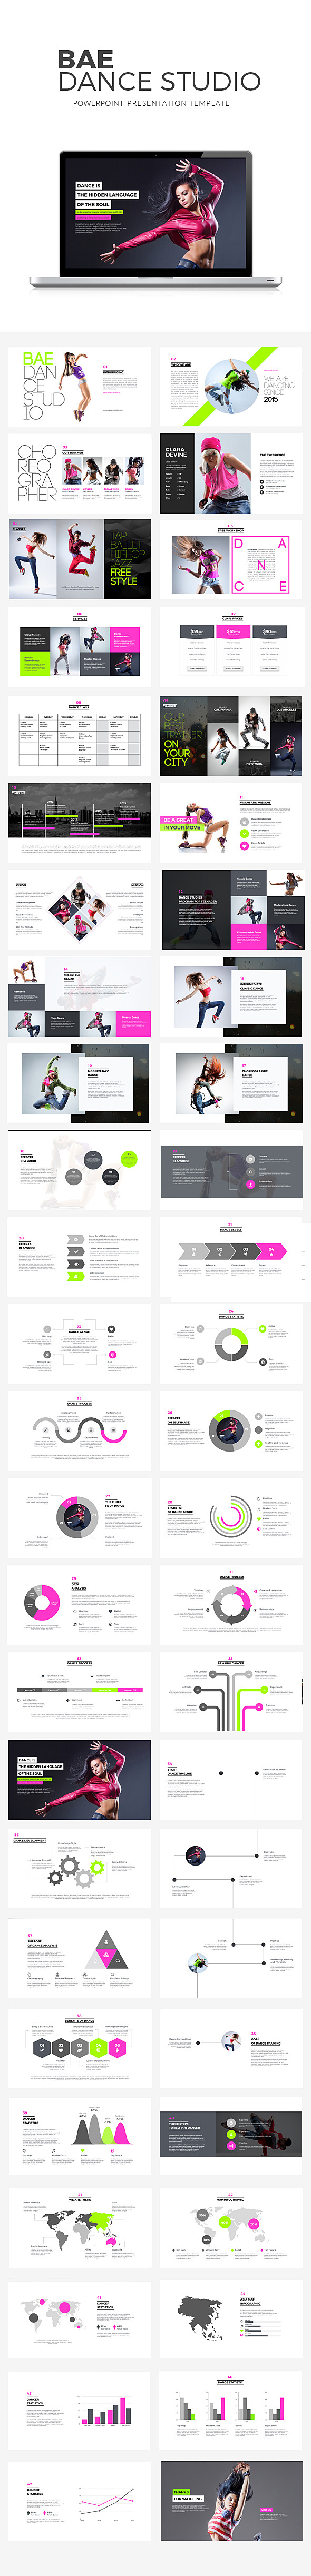 GraphicRiver Bae Dance Powerpoint Presentation 11812983